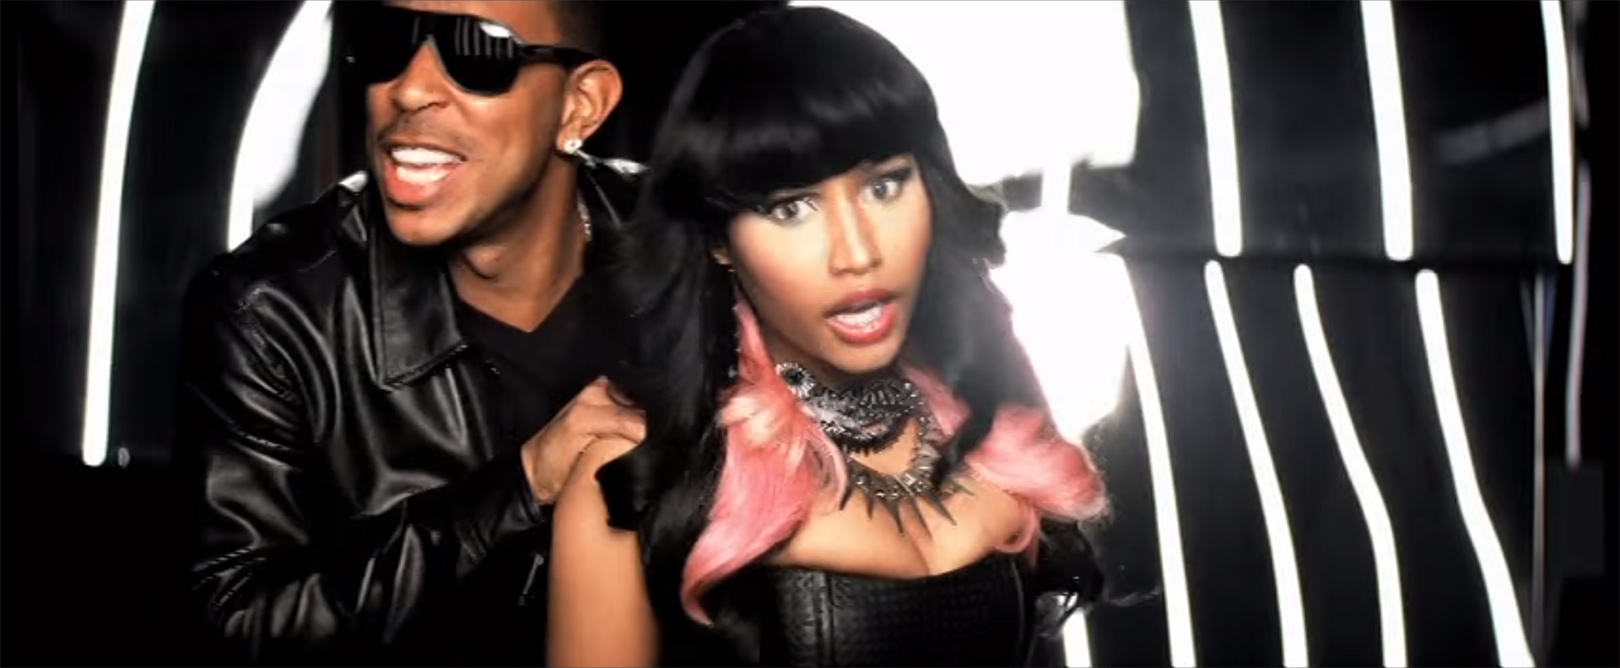 nicki_minaj_video_inset8